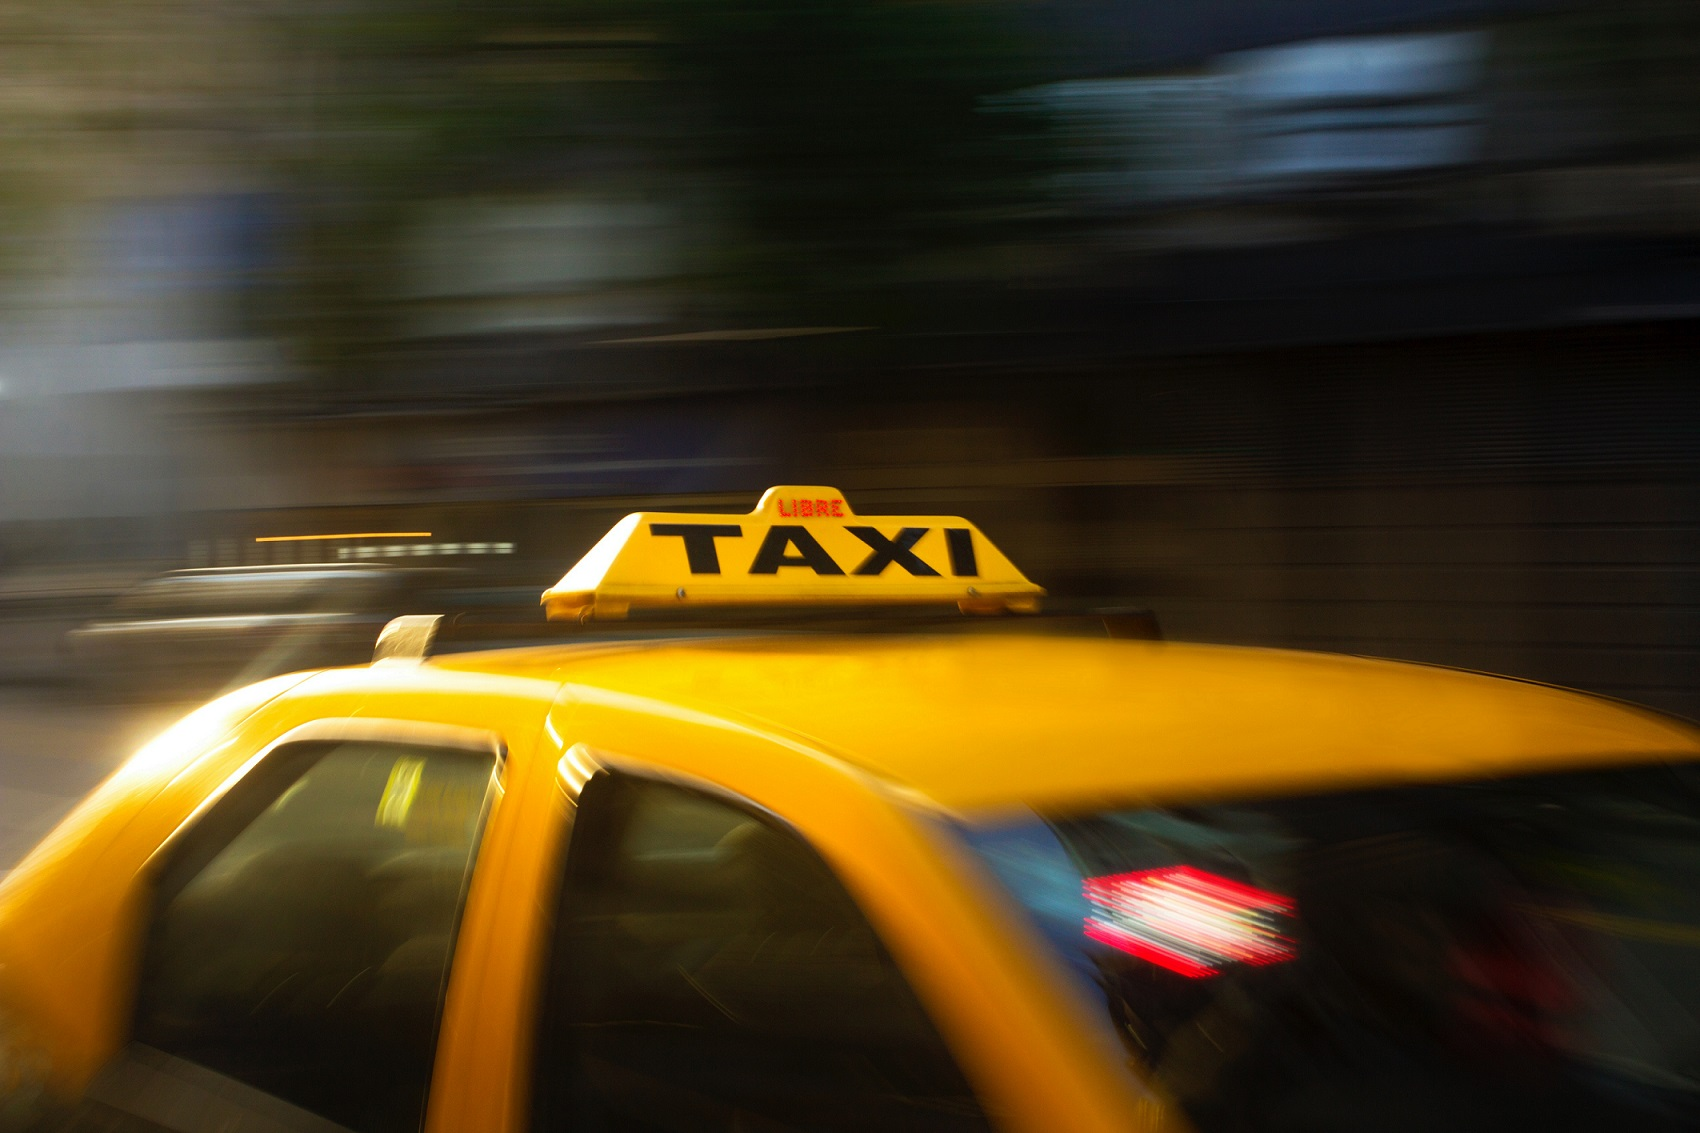 Taxi Love